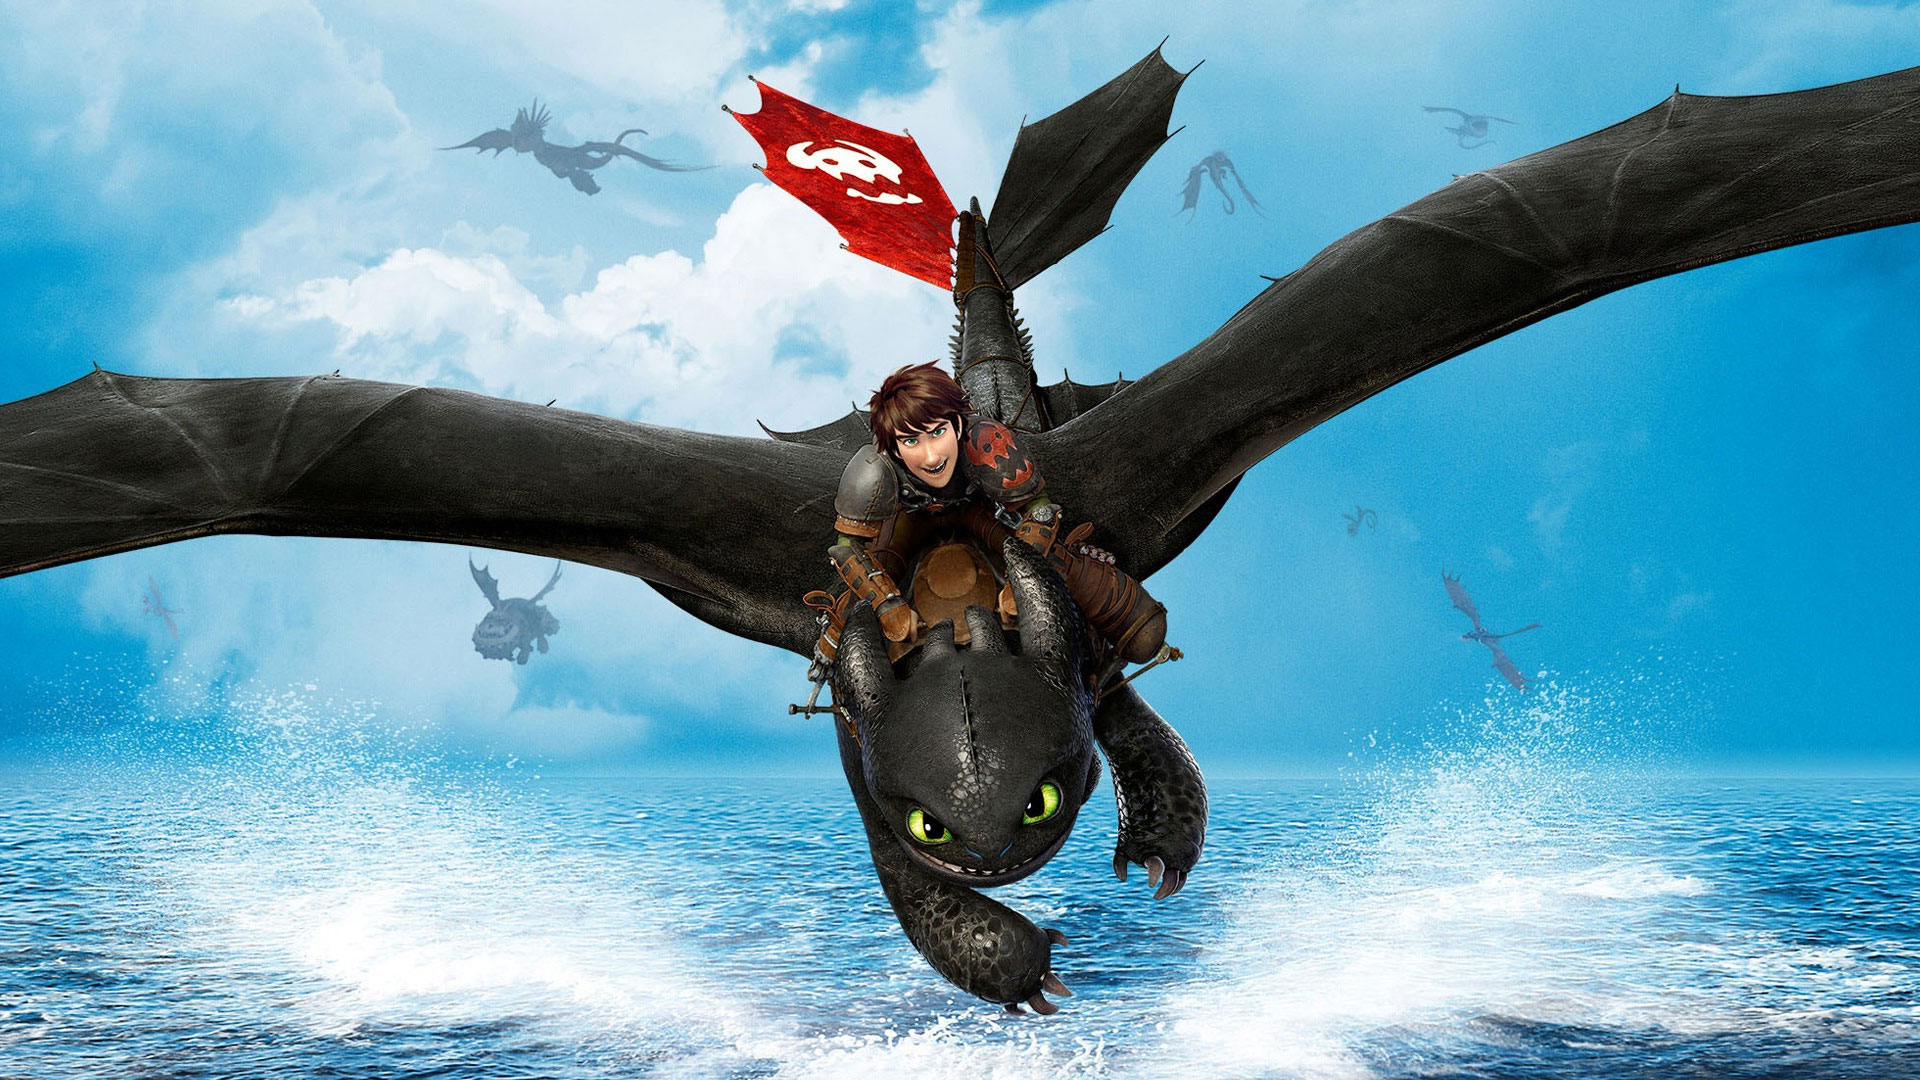 How To Train Your Dragon 2 Wallpaper 1920x1080 54513